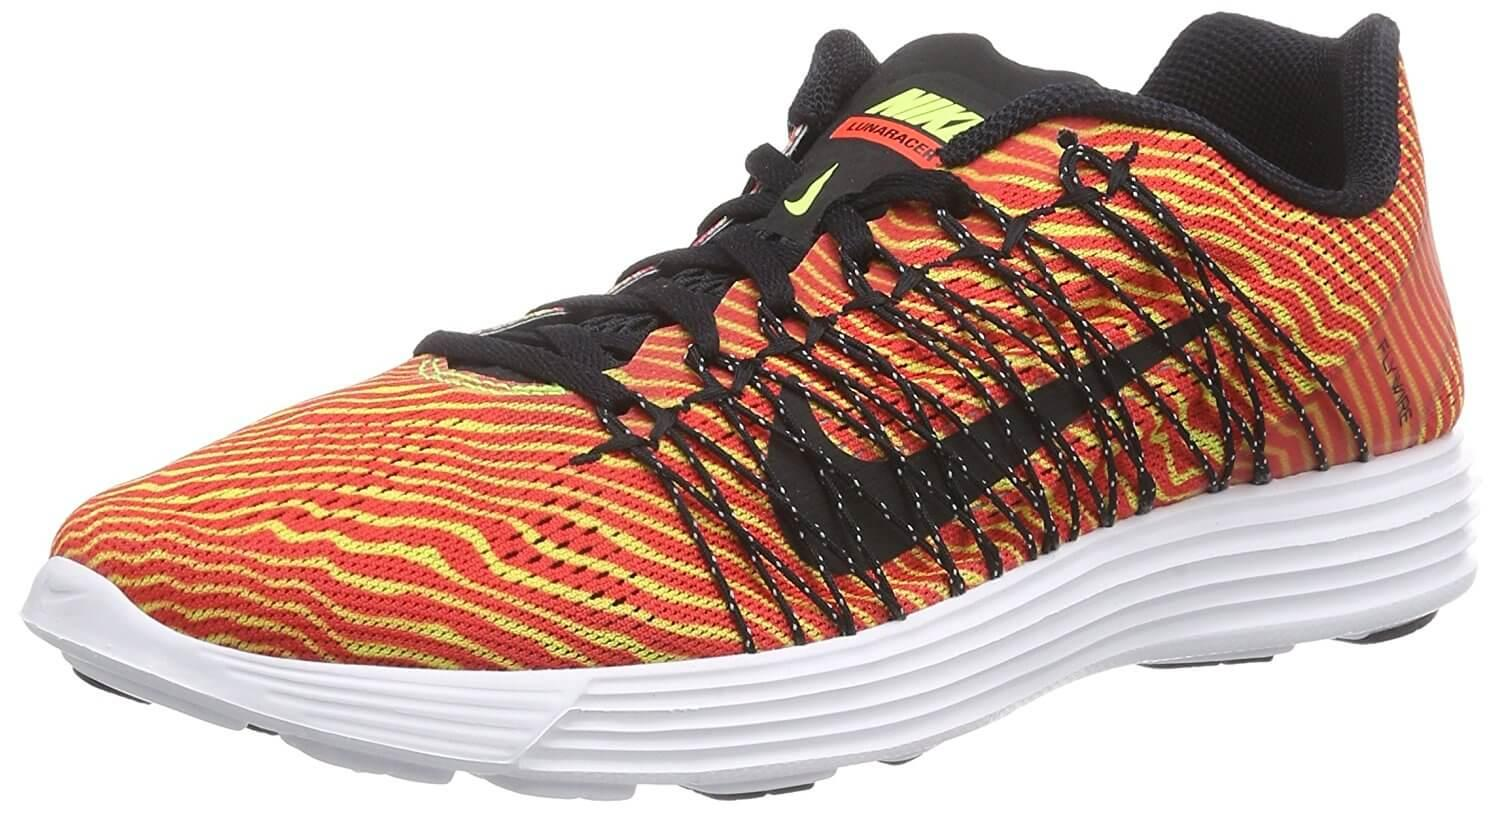 d2af38c8fb6b the Nike LunaRacer 3 is a stylish and comfortable road racing shoe ...